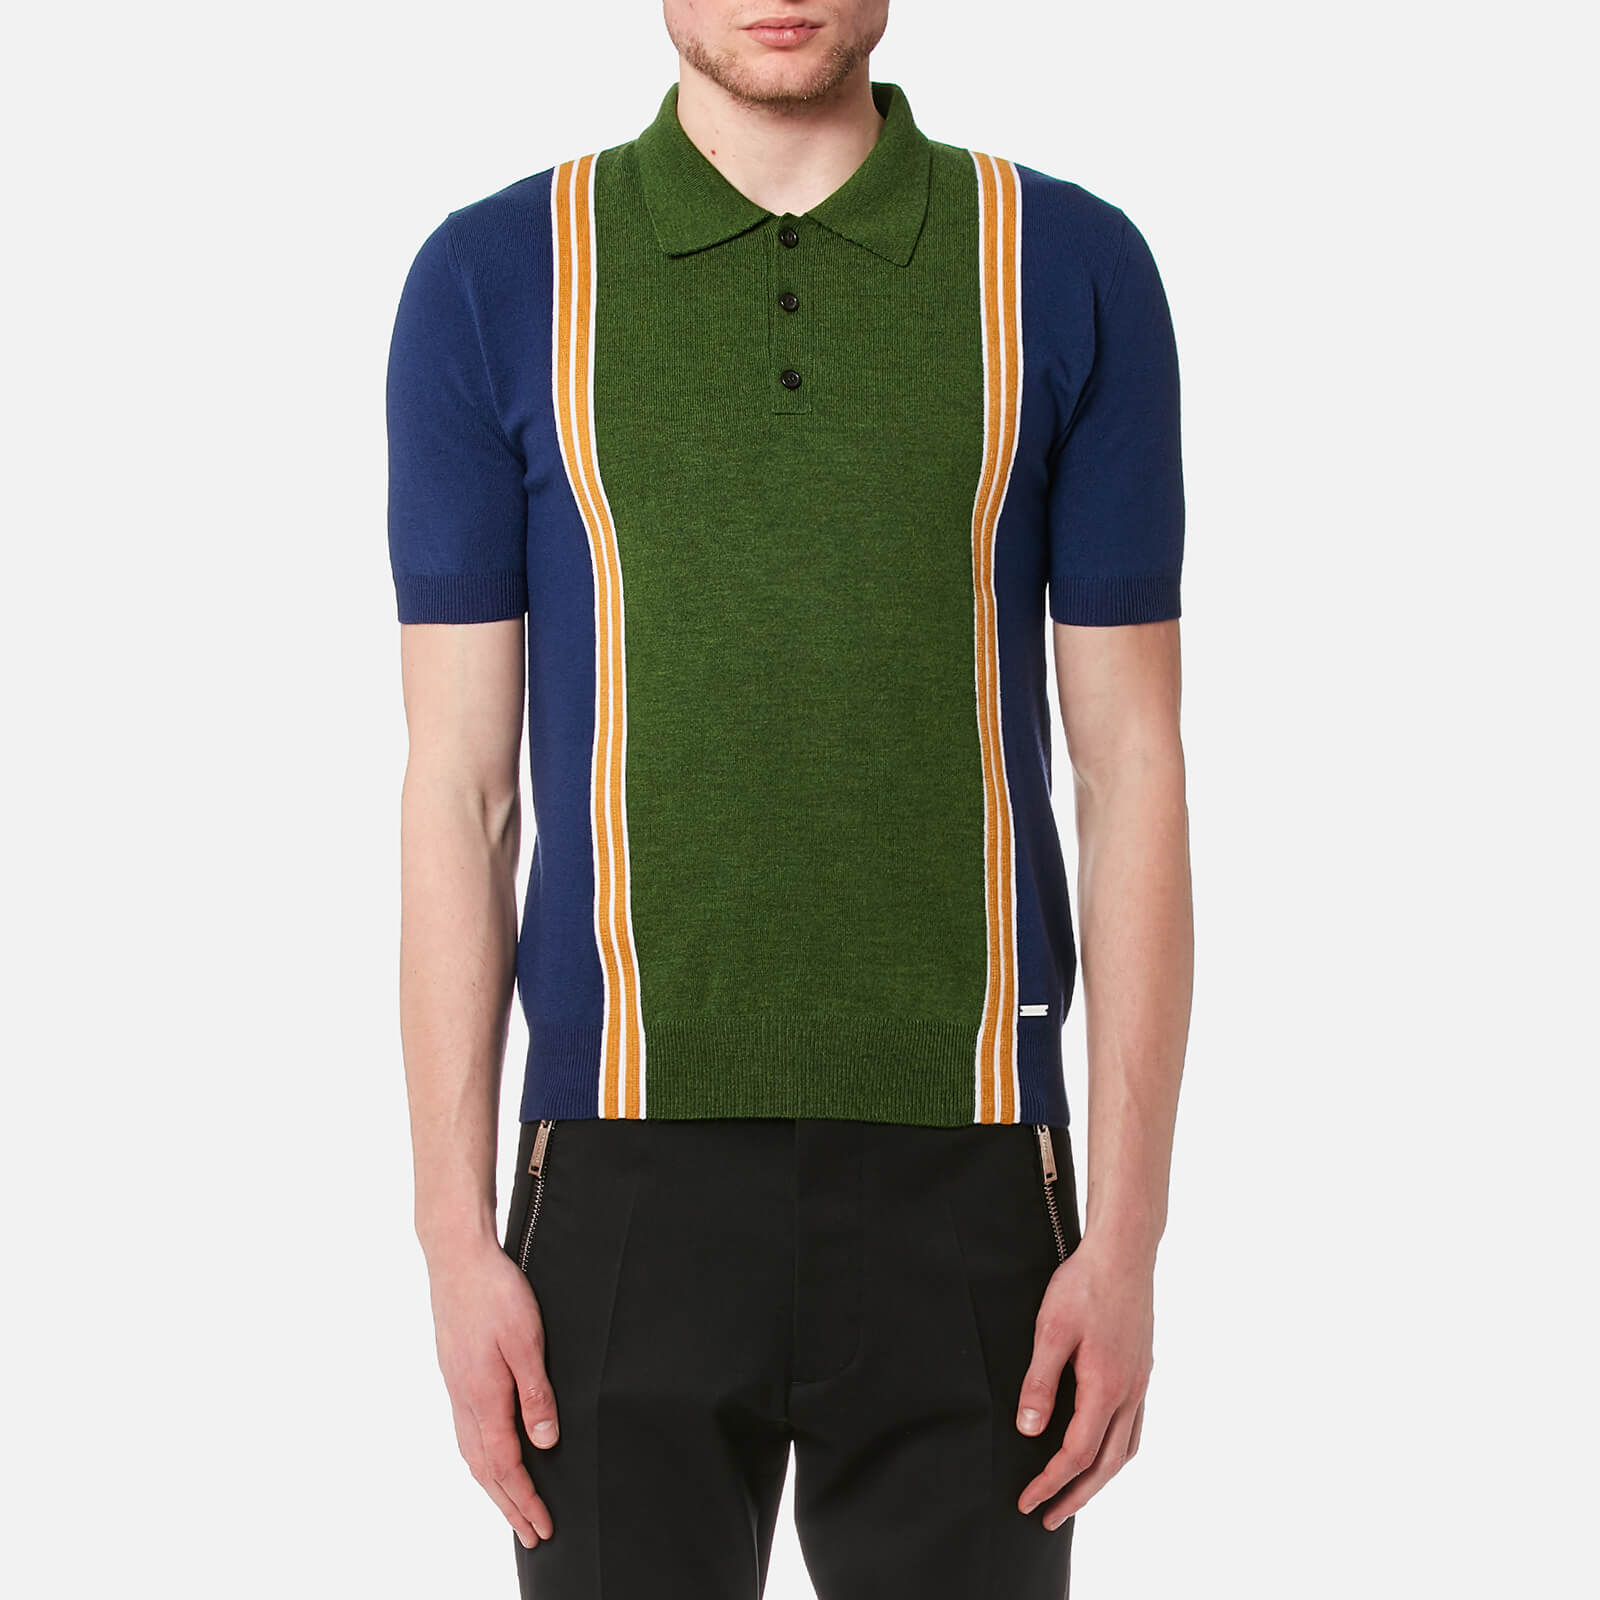 2f5c9e84 Dsquared2 Men's 3 Button Striped Knitted Polo Shirt - Blue/White/Ocre -  Free UK Delivery over £50